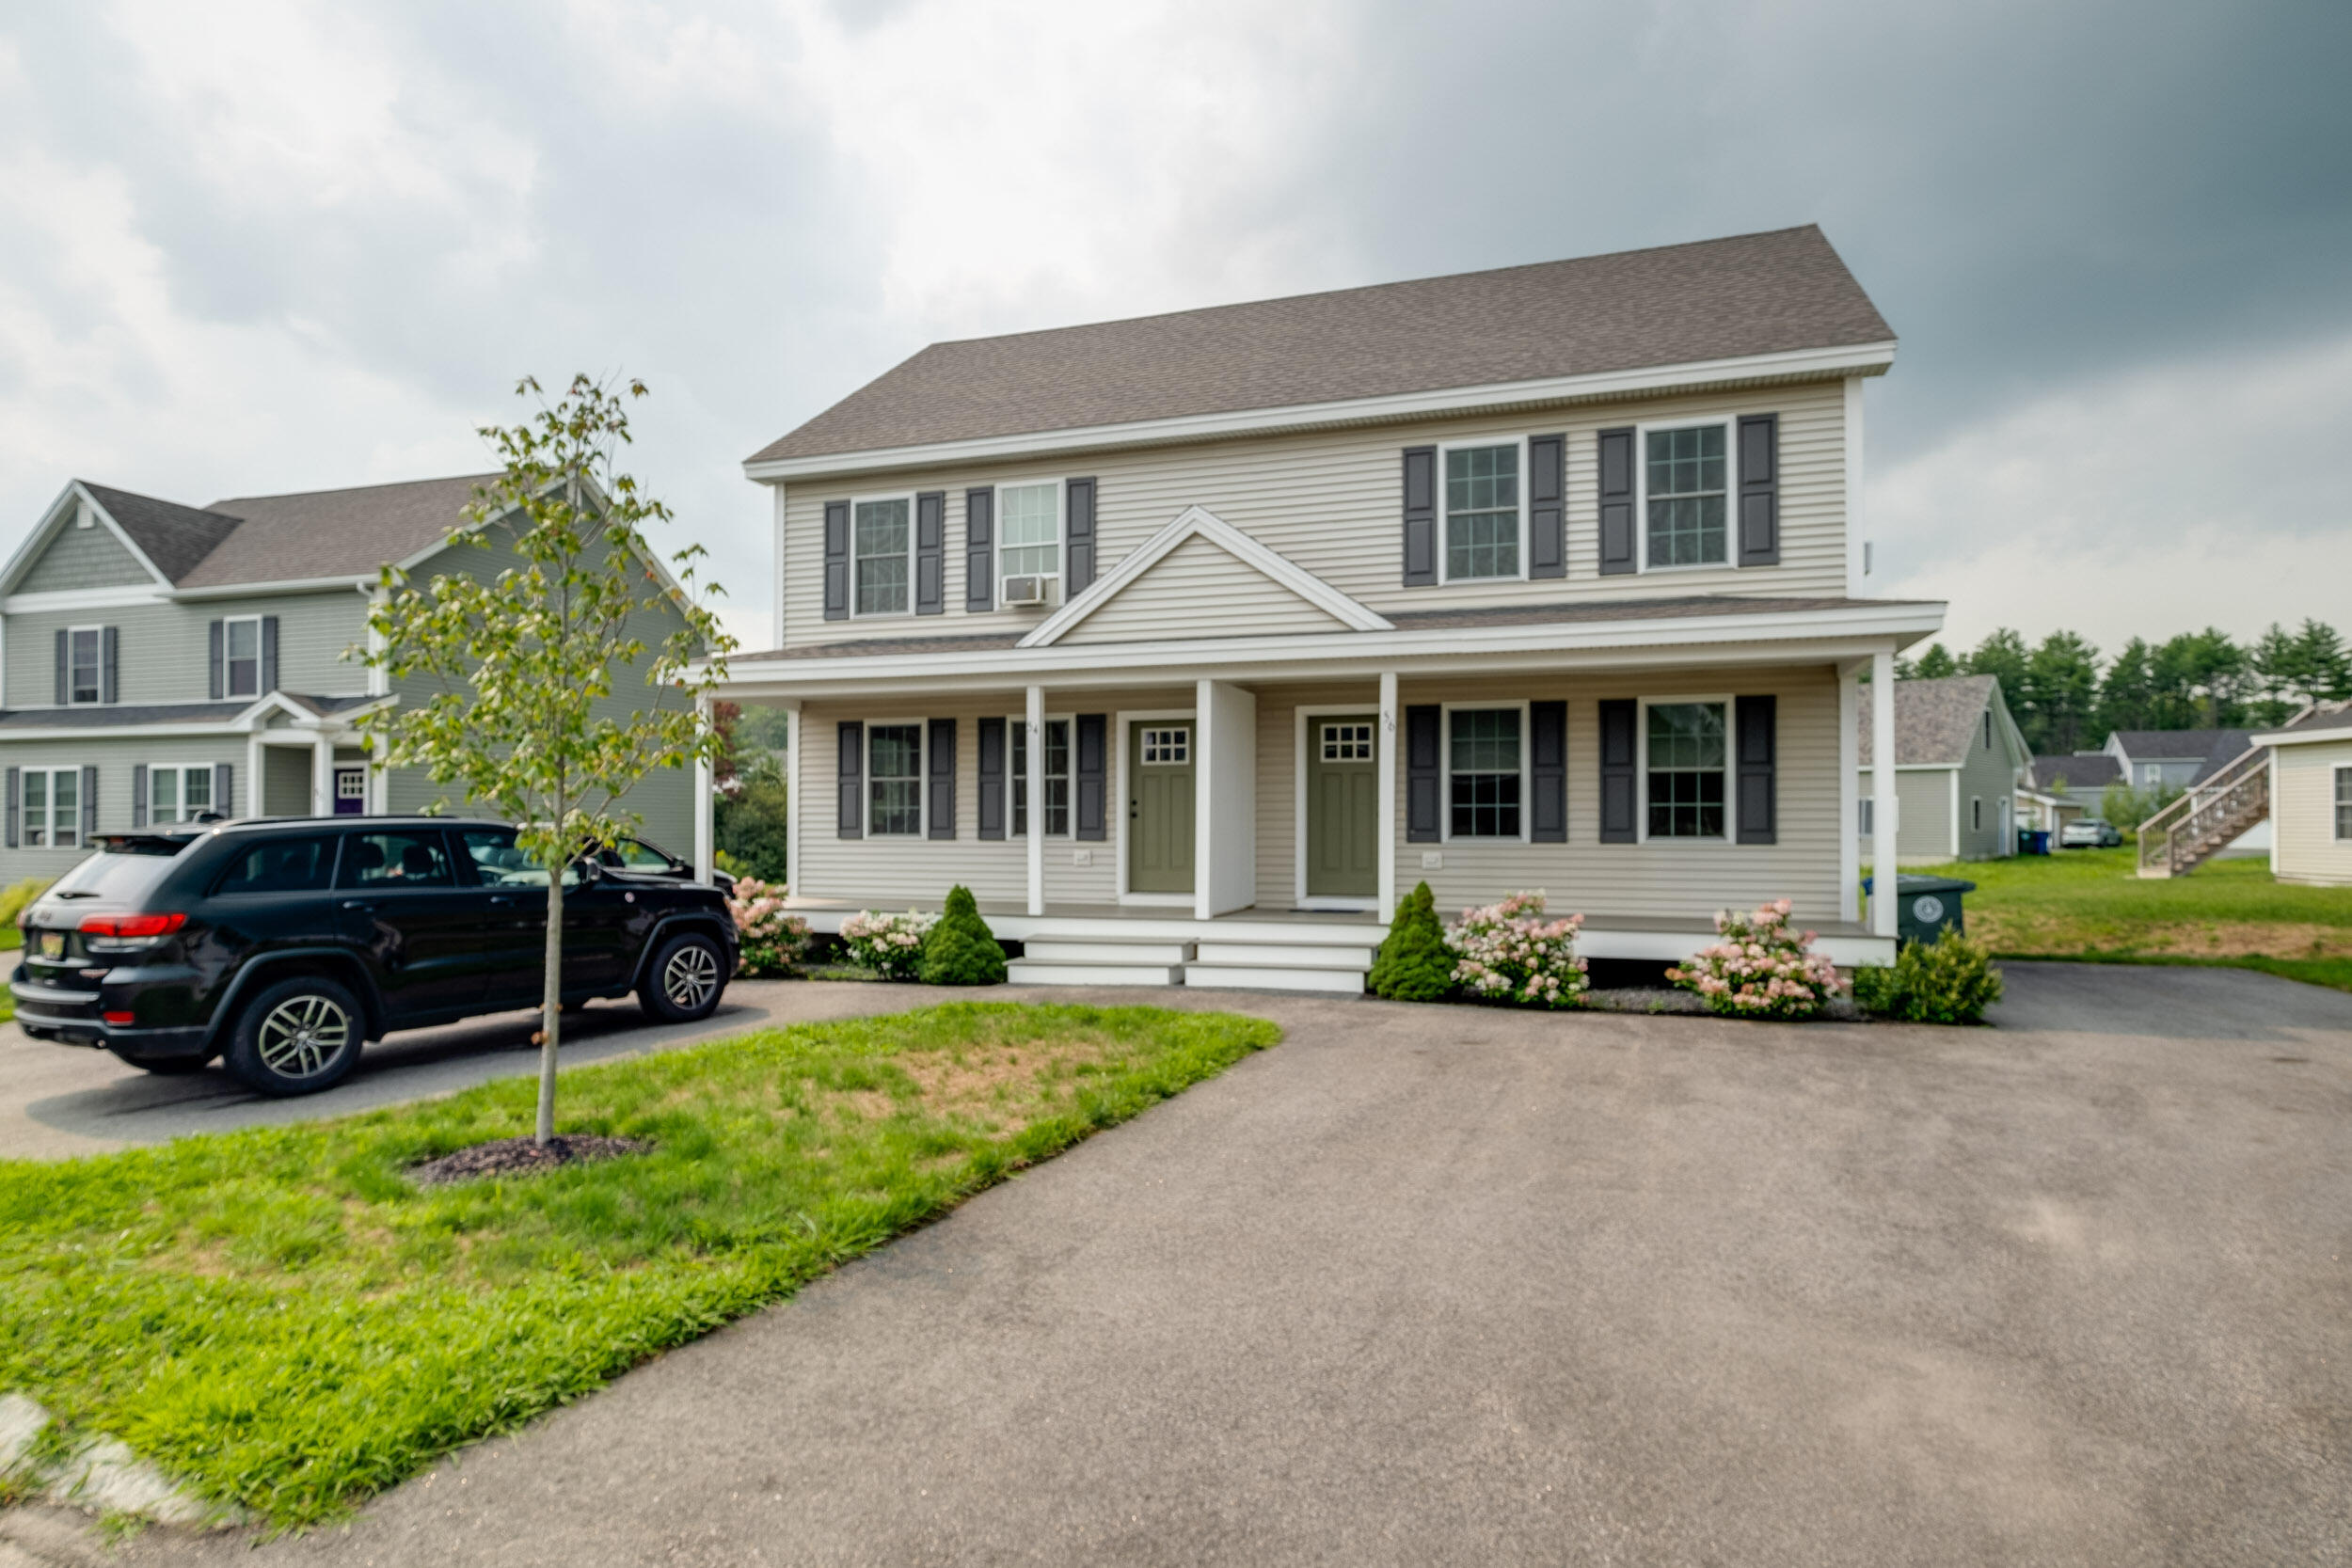 Main image for MLS listing 1502986